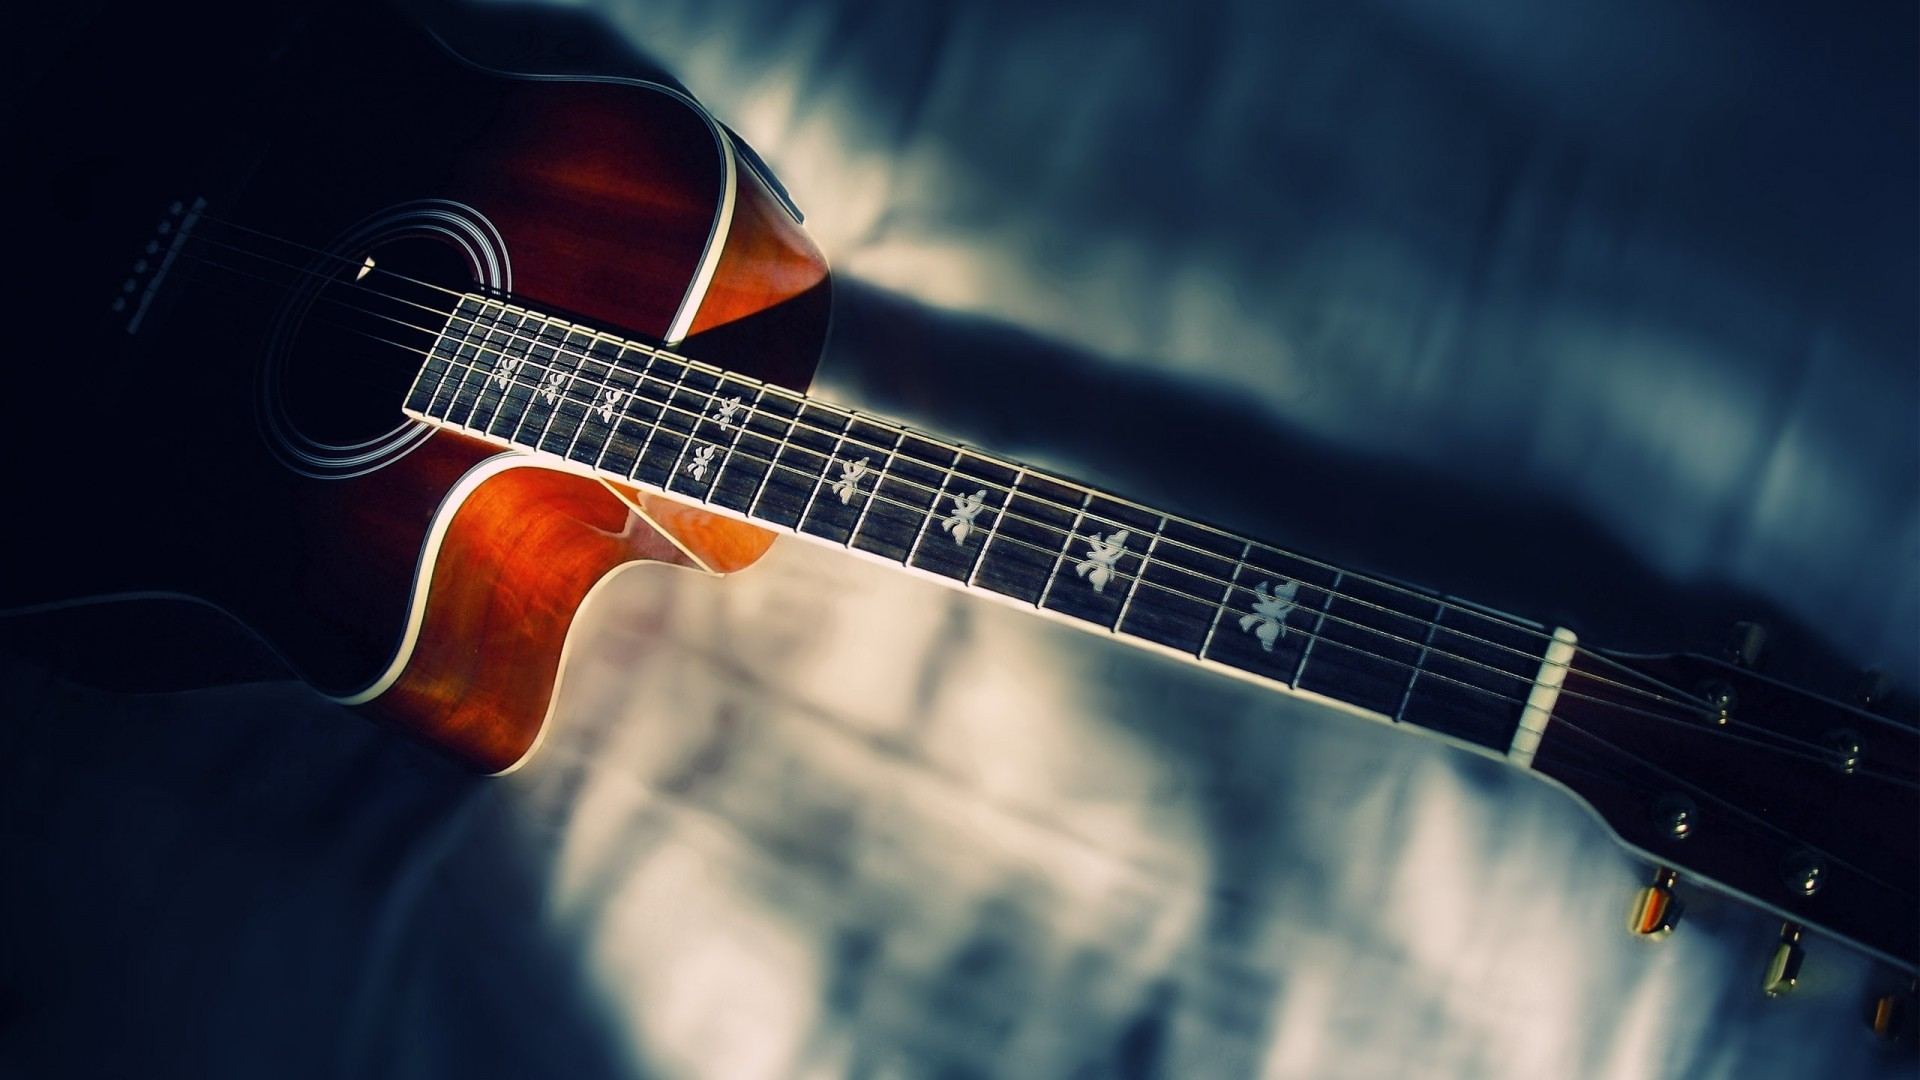 45 acoustic guitar wallpaper hd on wallpapersafari. Black Bedroom Furniture Sets. Home Design Ideas